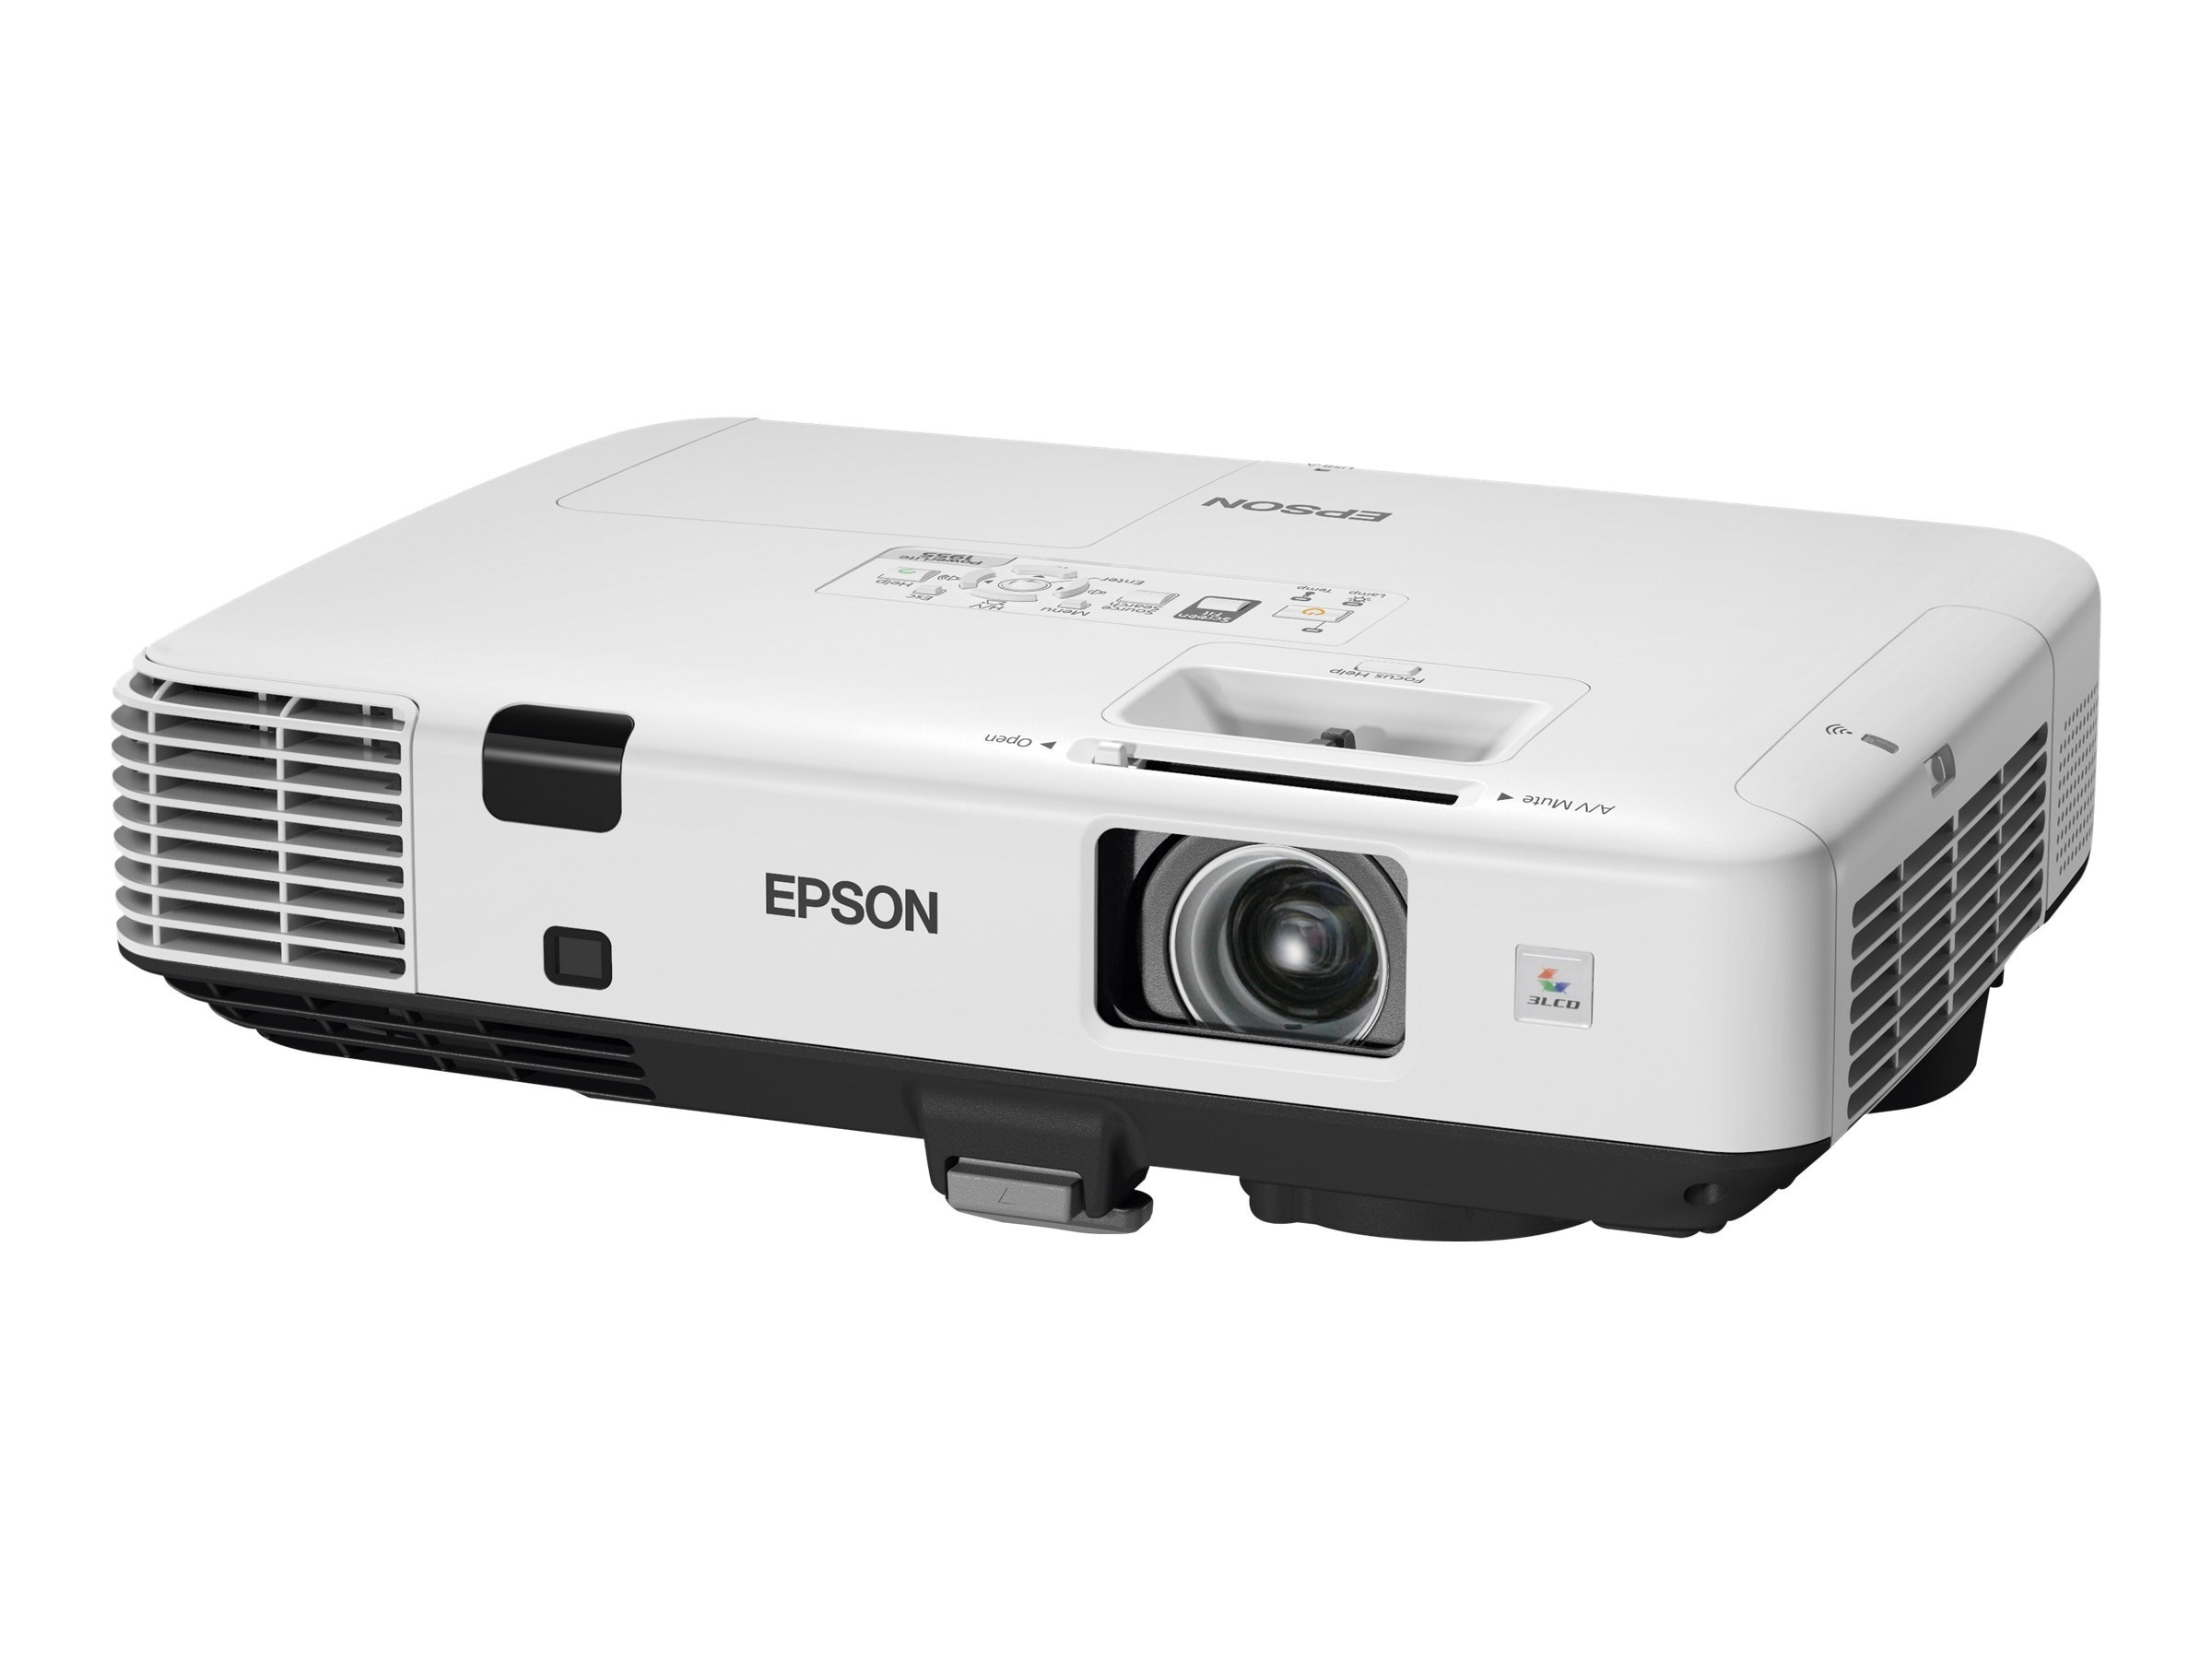 Epson Powerlite 1955 XGA 3LCD Projector, 4500 Lumens, White, V11H490020, 13881708, Projectors